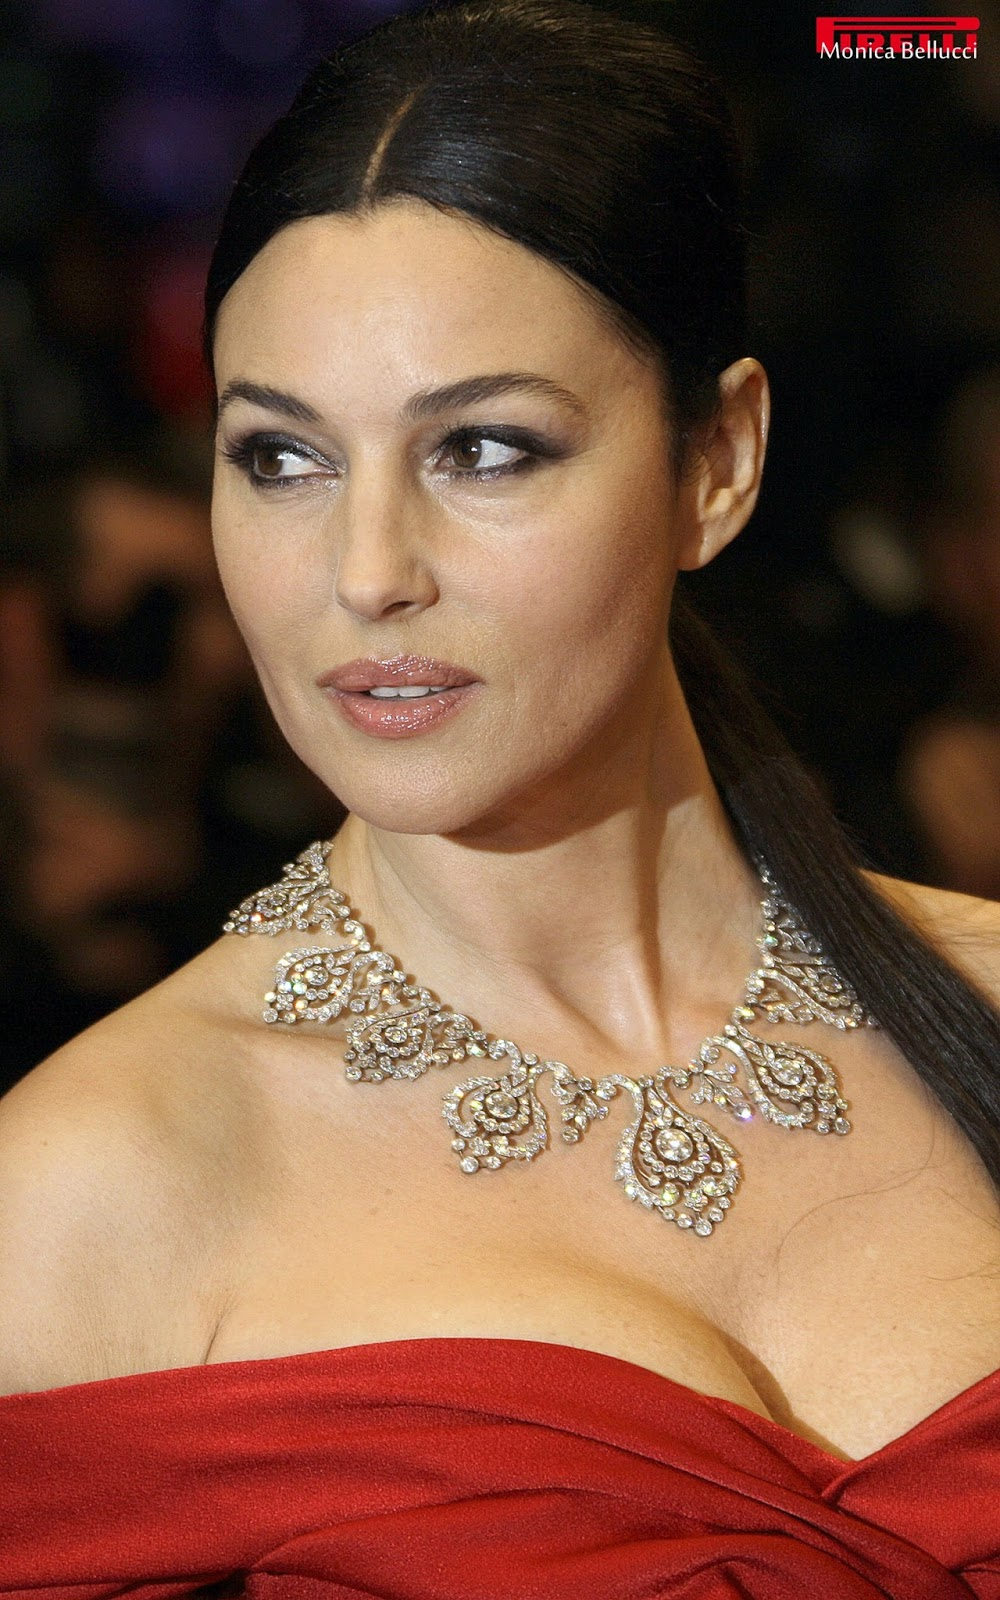 Hollywood Actress Moni... Monica Bellucci